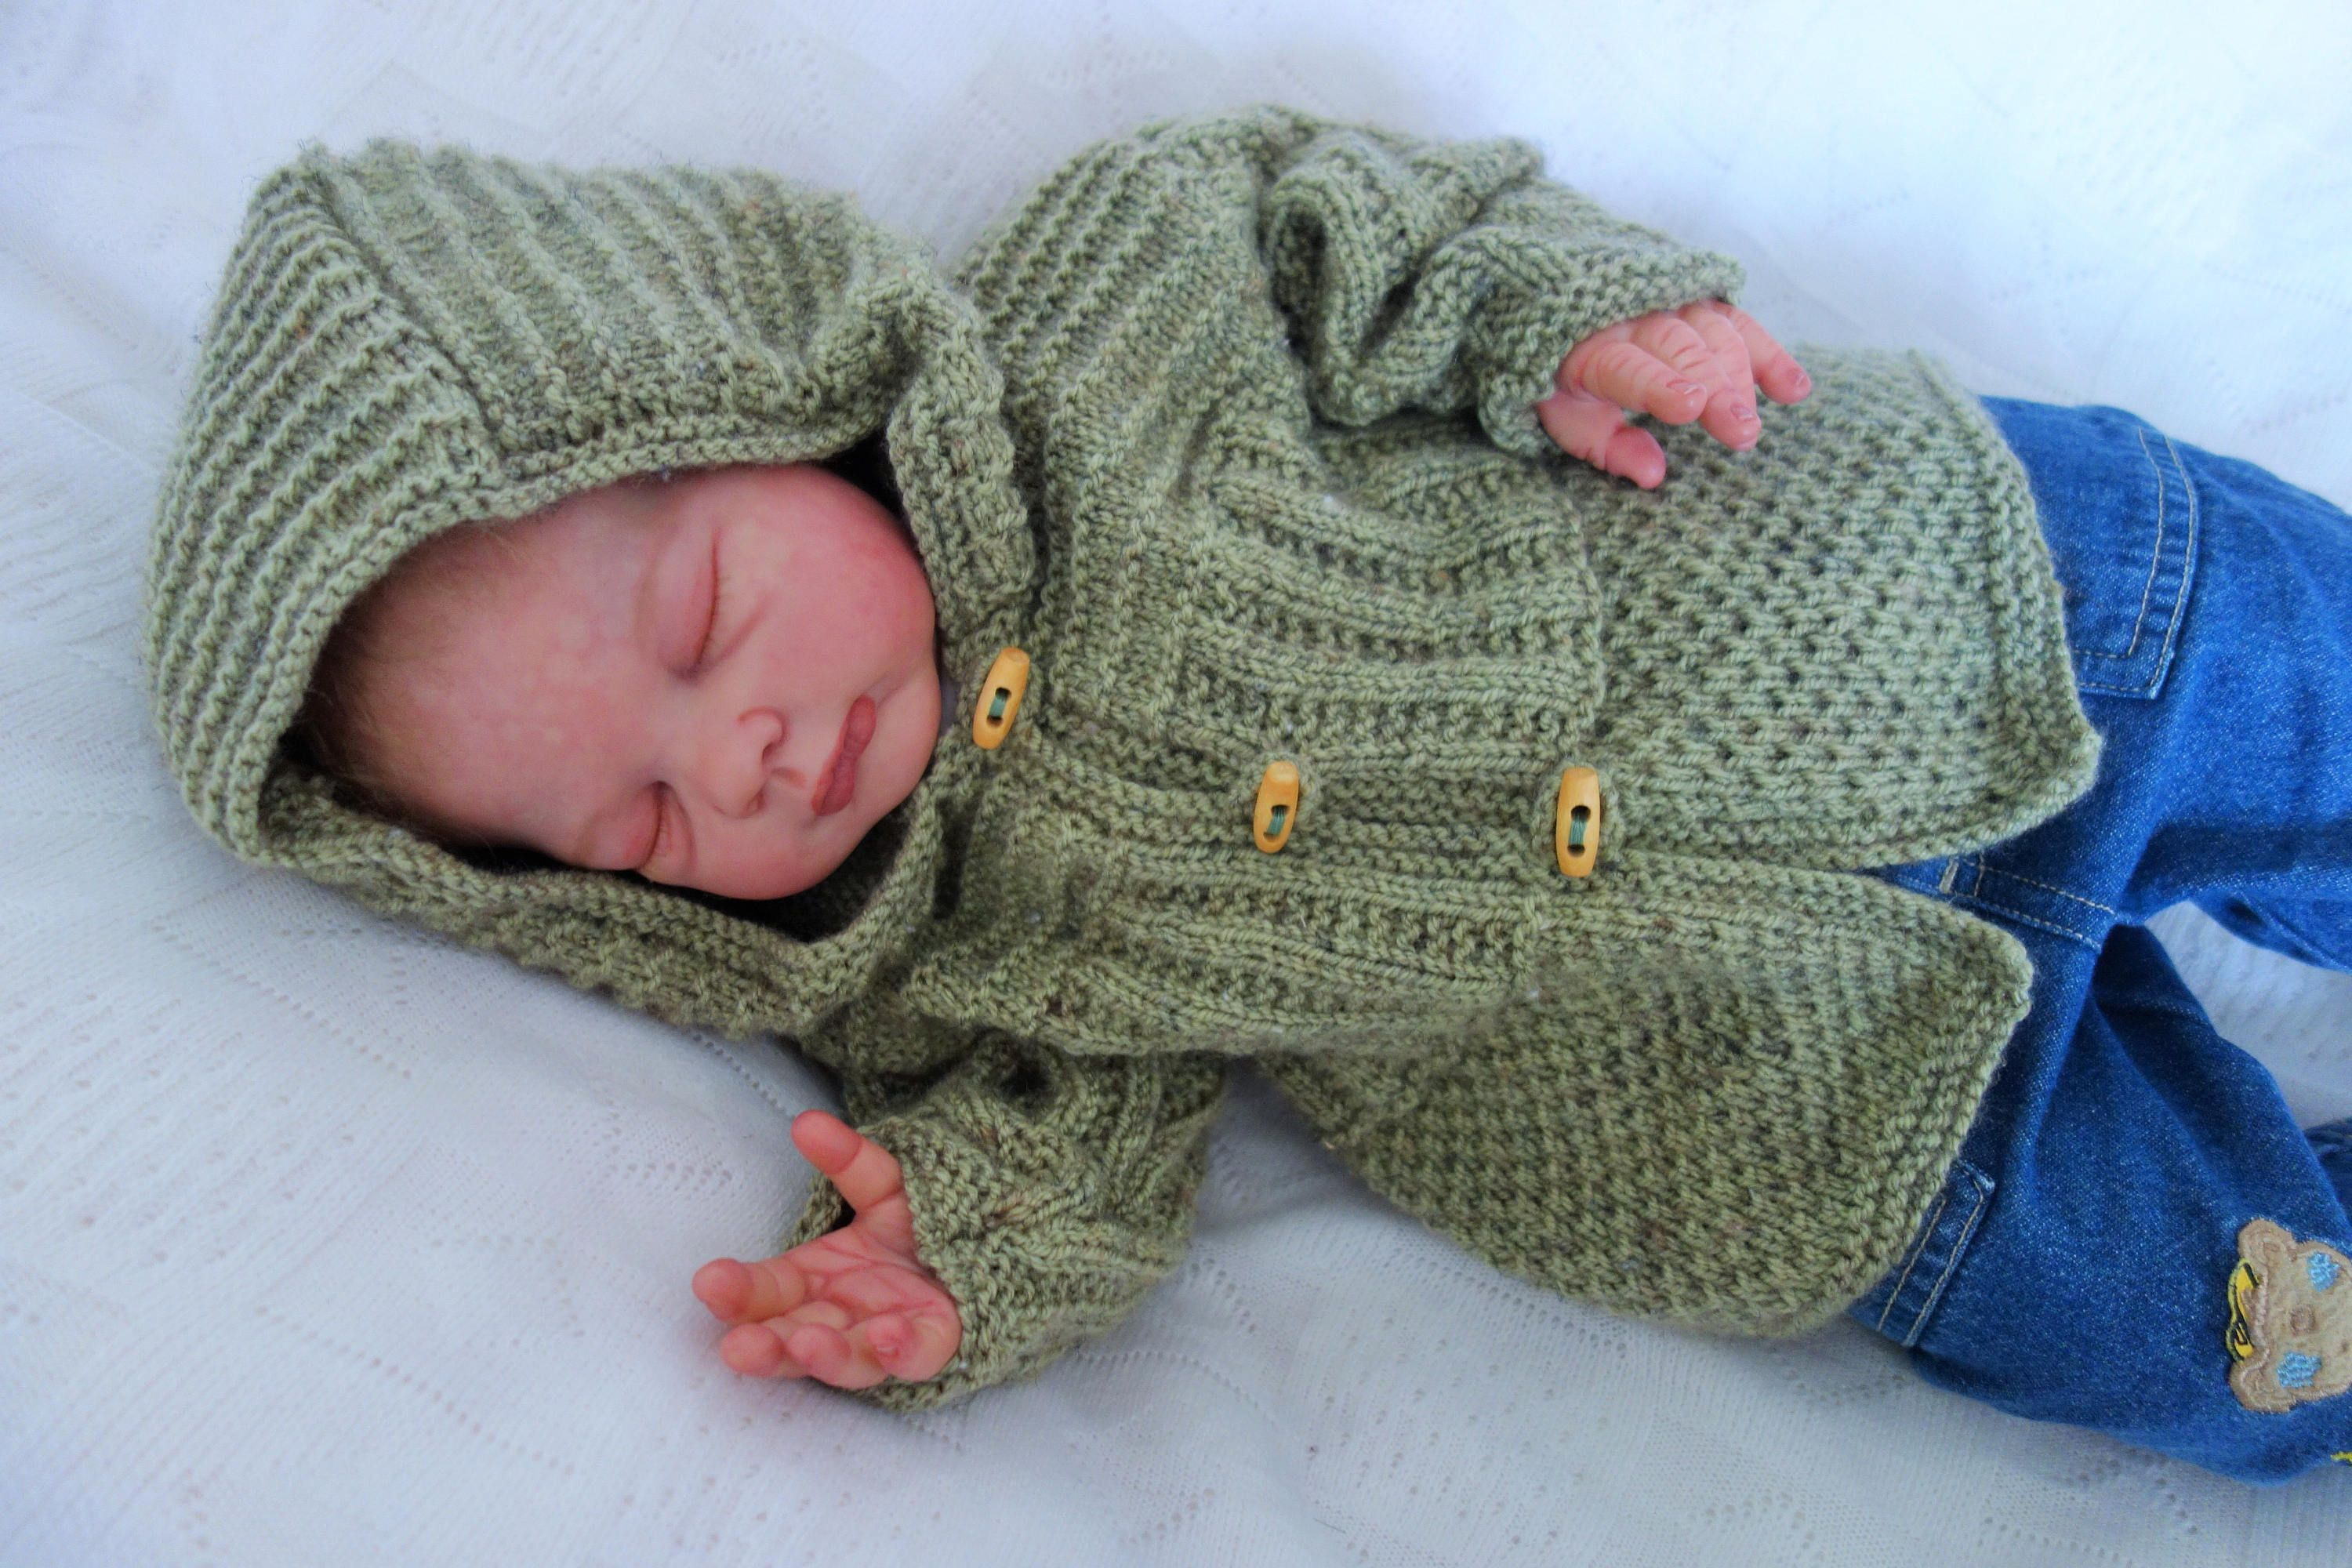 fd988991f Hand knitted baby s hooded cardigan sweater knitted in soft DK in ...